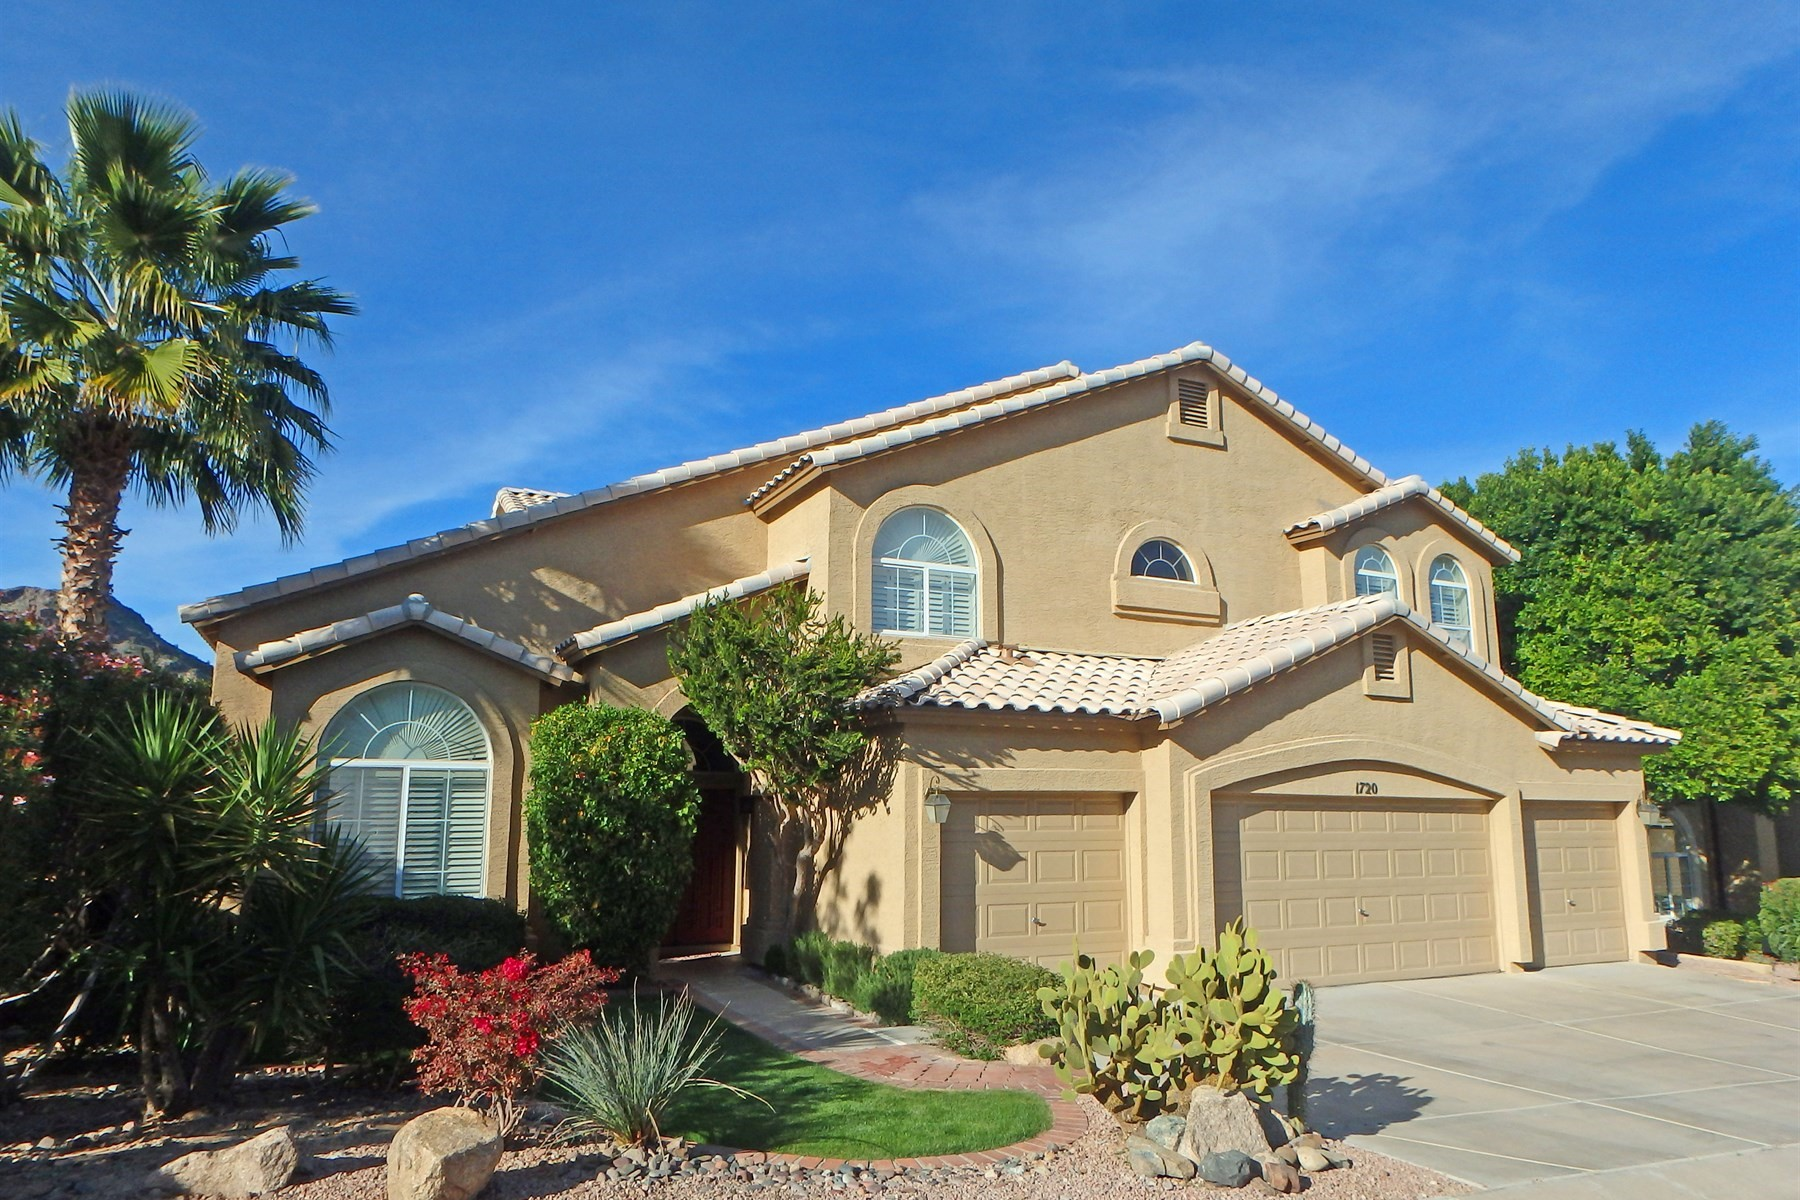 Moradia para Venda às Remarkable home in Pointe Mountainside 1720 E Sheena Dr Phoenix, Arizona, 85022 Estados Unidos